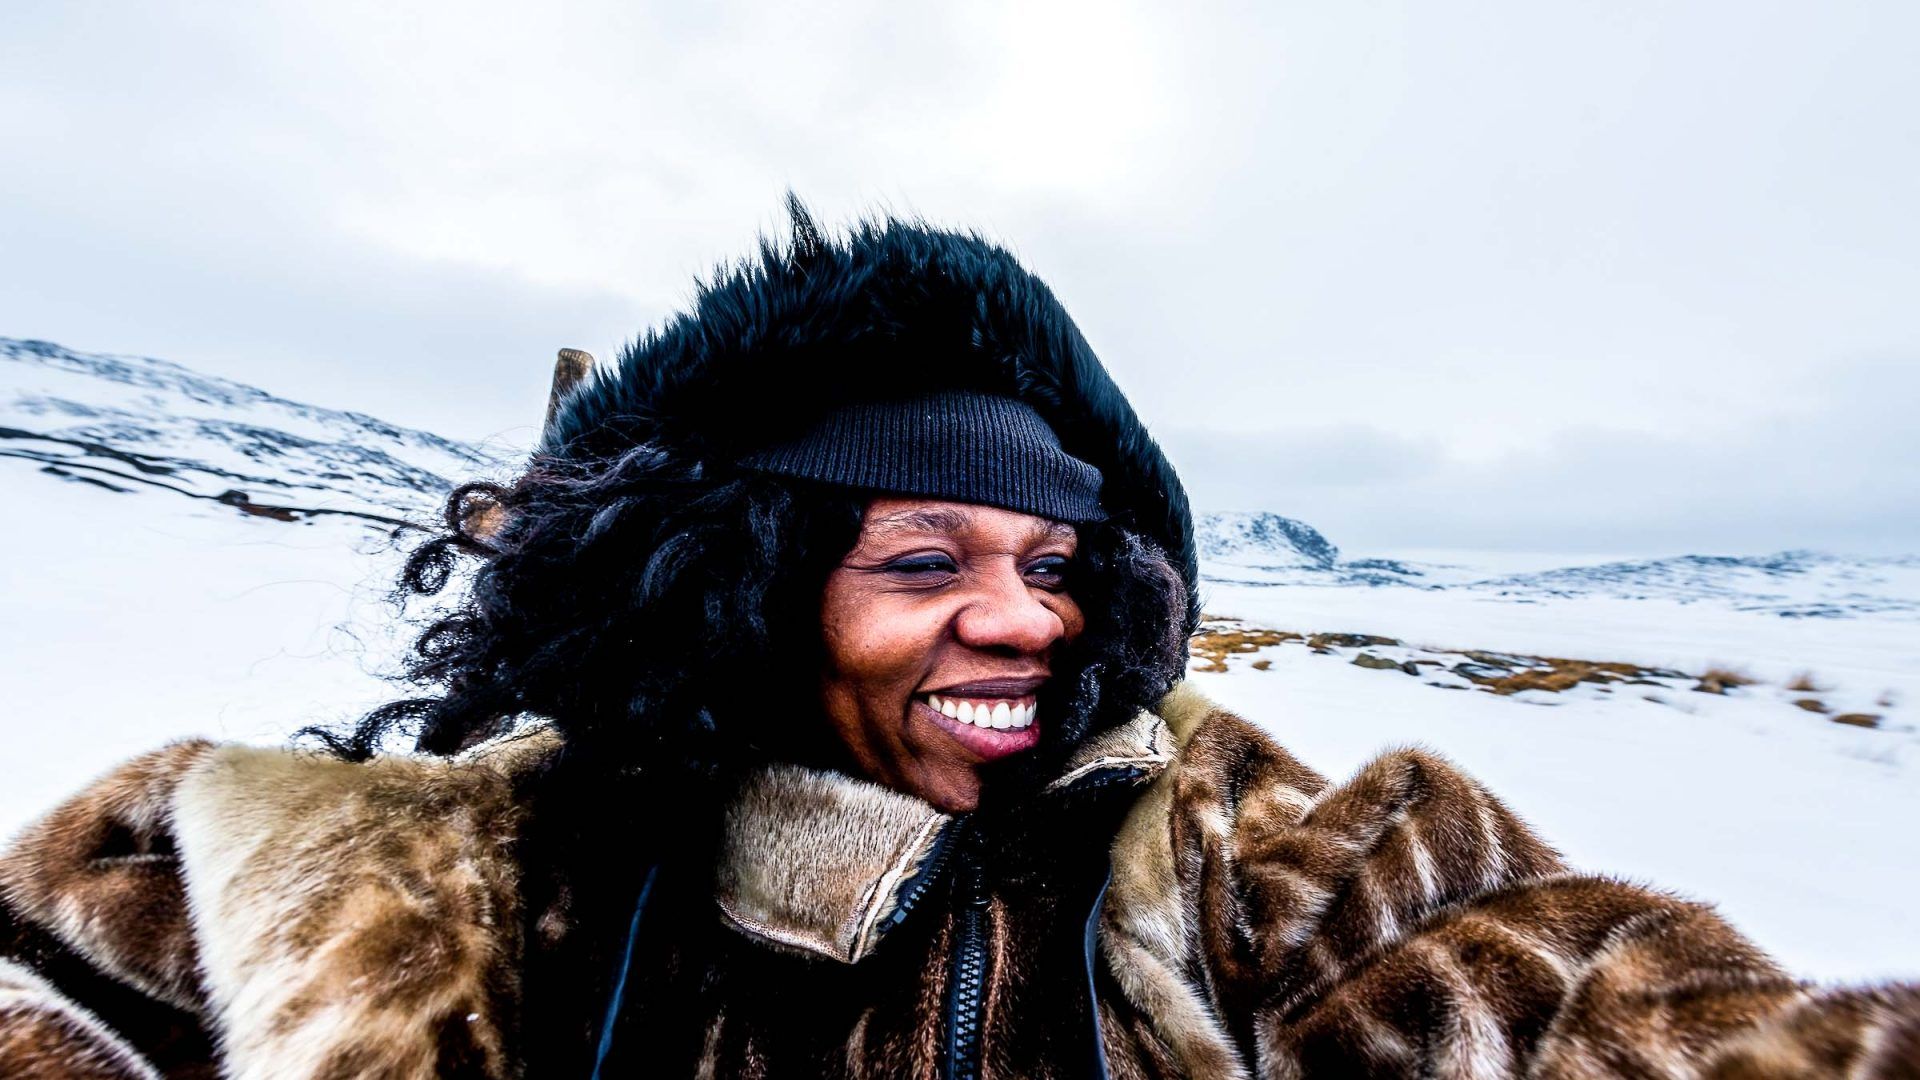 Adventure.com's featured contributor Lola Akinmade Åkerström, a Swedish-Nigerian travel photographer and author, during a dog sledding experience in Ilulissat, Greenland.